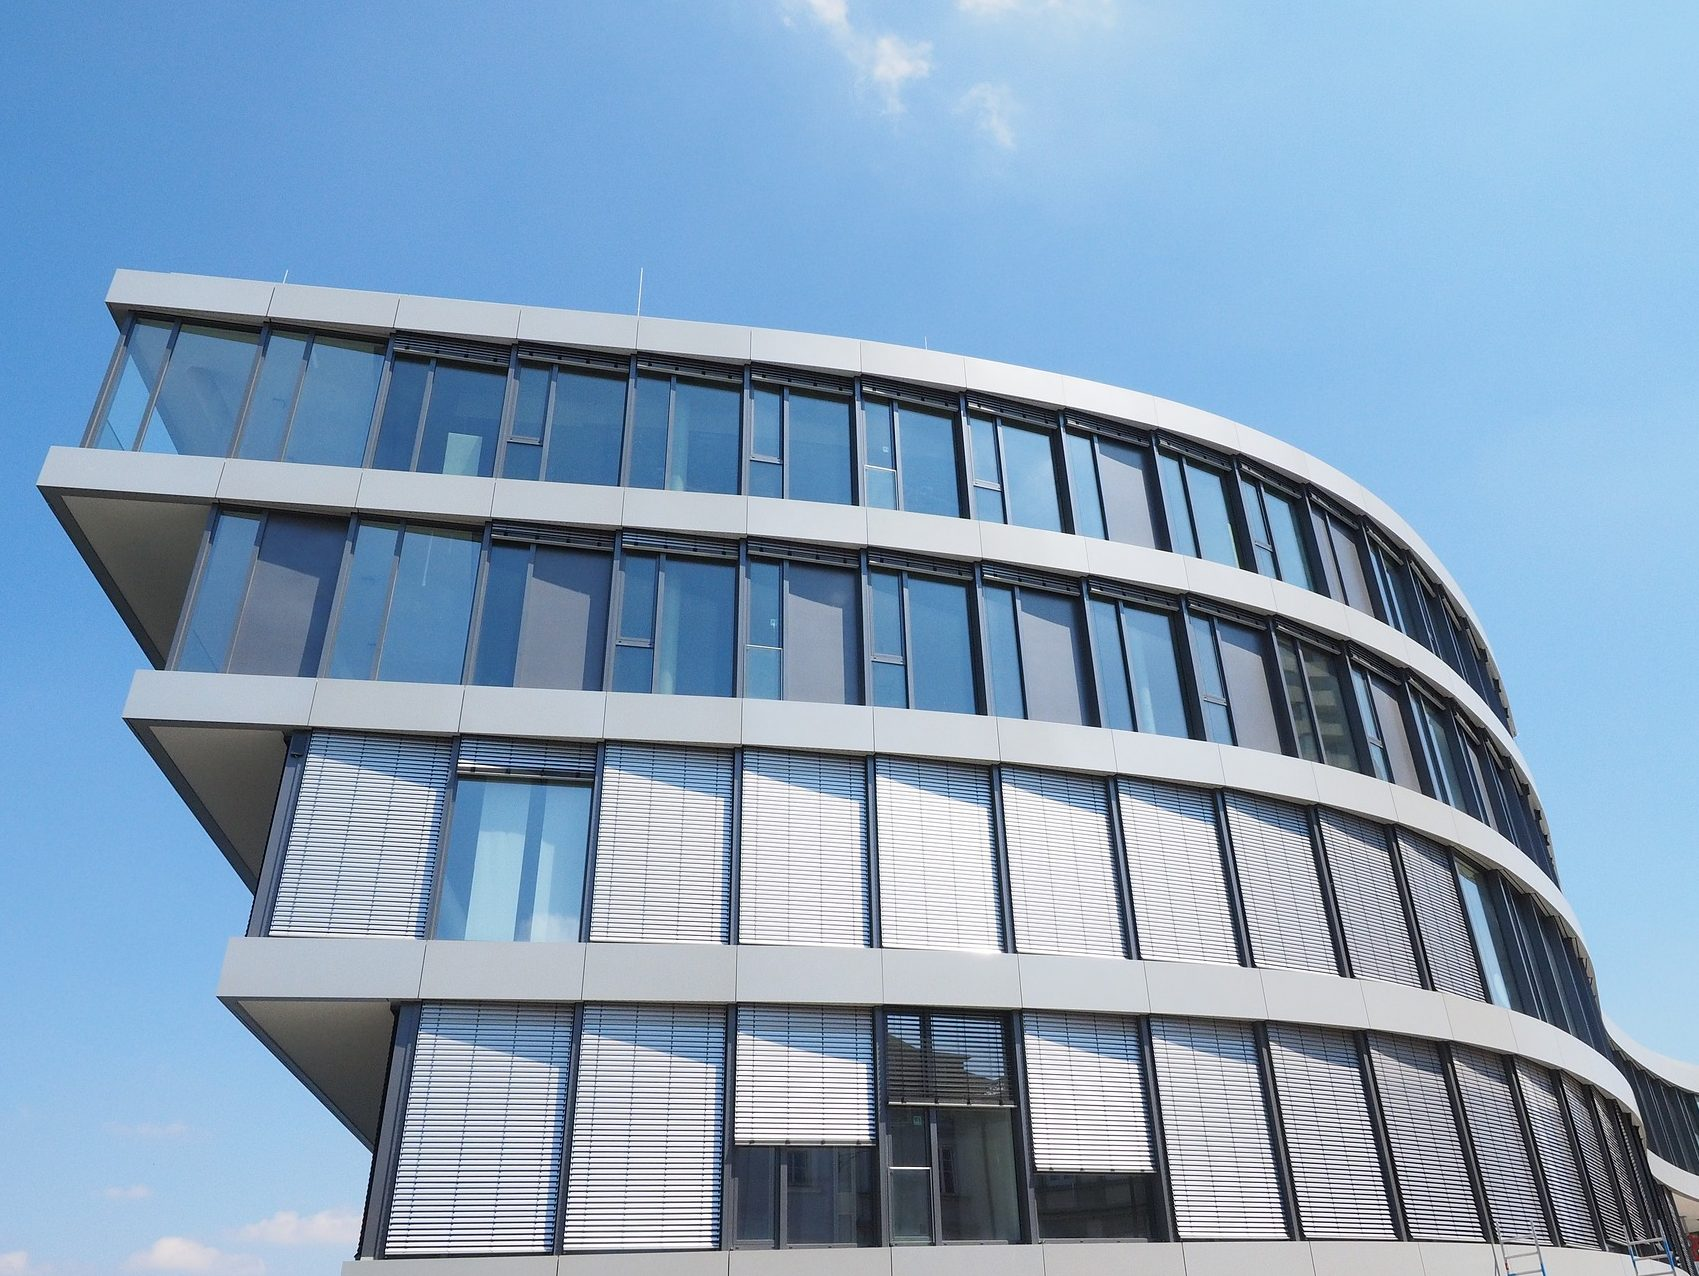 Curtain Wall Glass : Glass curtain walls what are